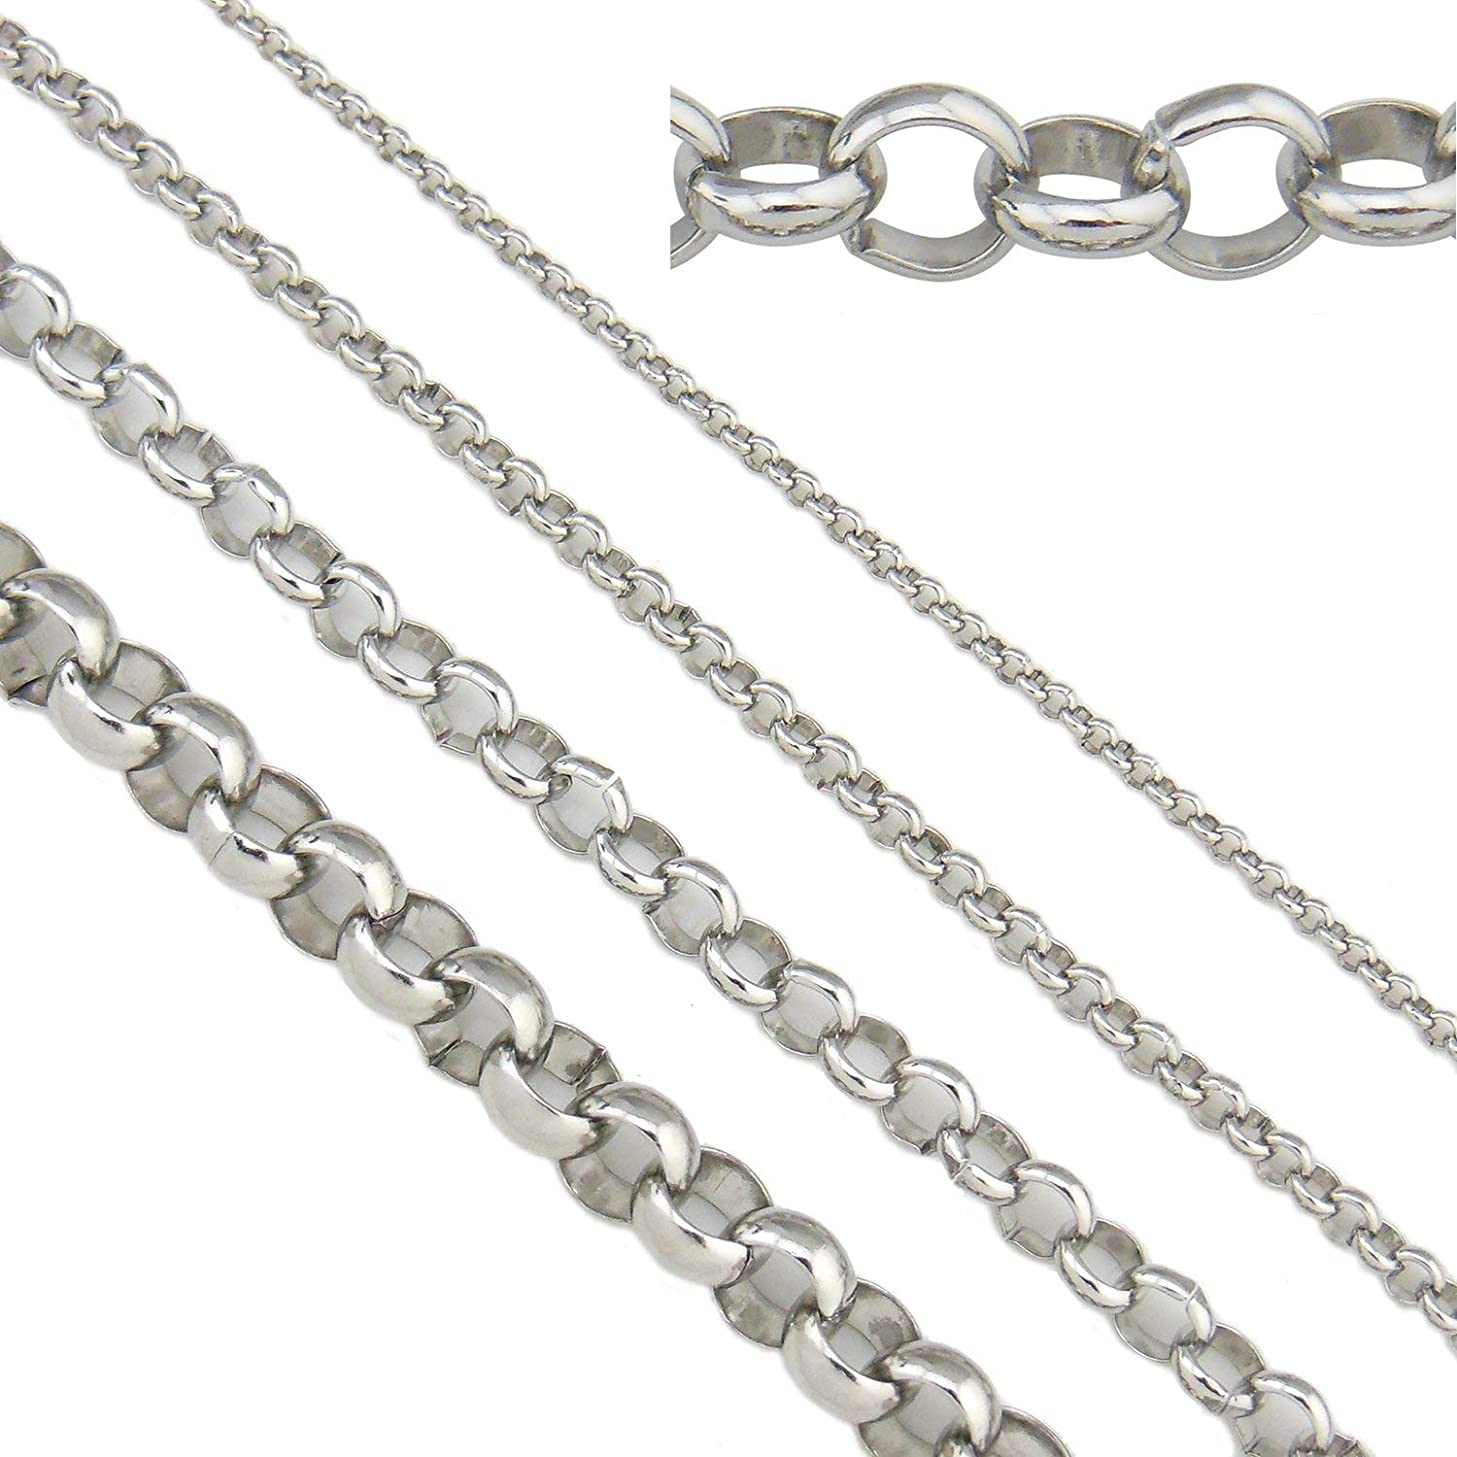 16.5ft 5mm Width Stainless Steel Rolo Cable Chains Findings Fit for Jewelry Making &DIY (SC-1020-C)